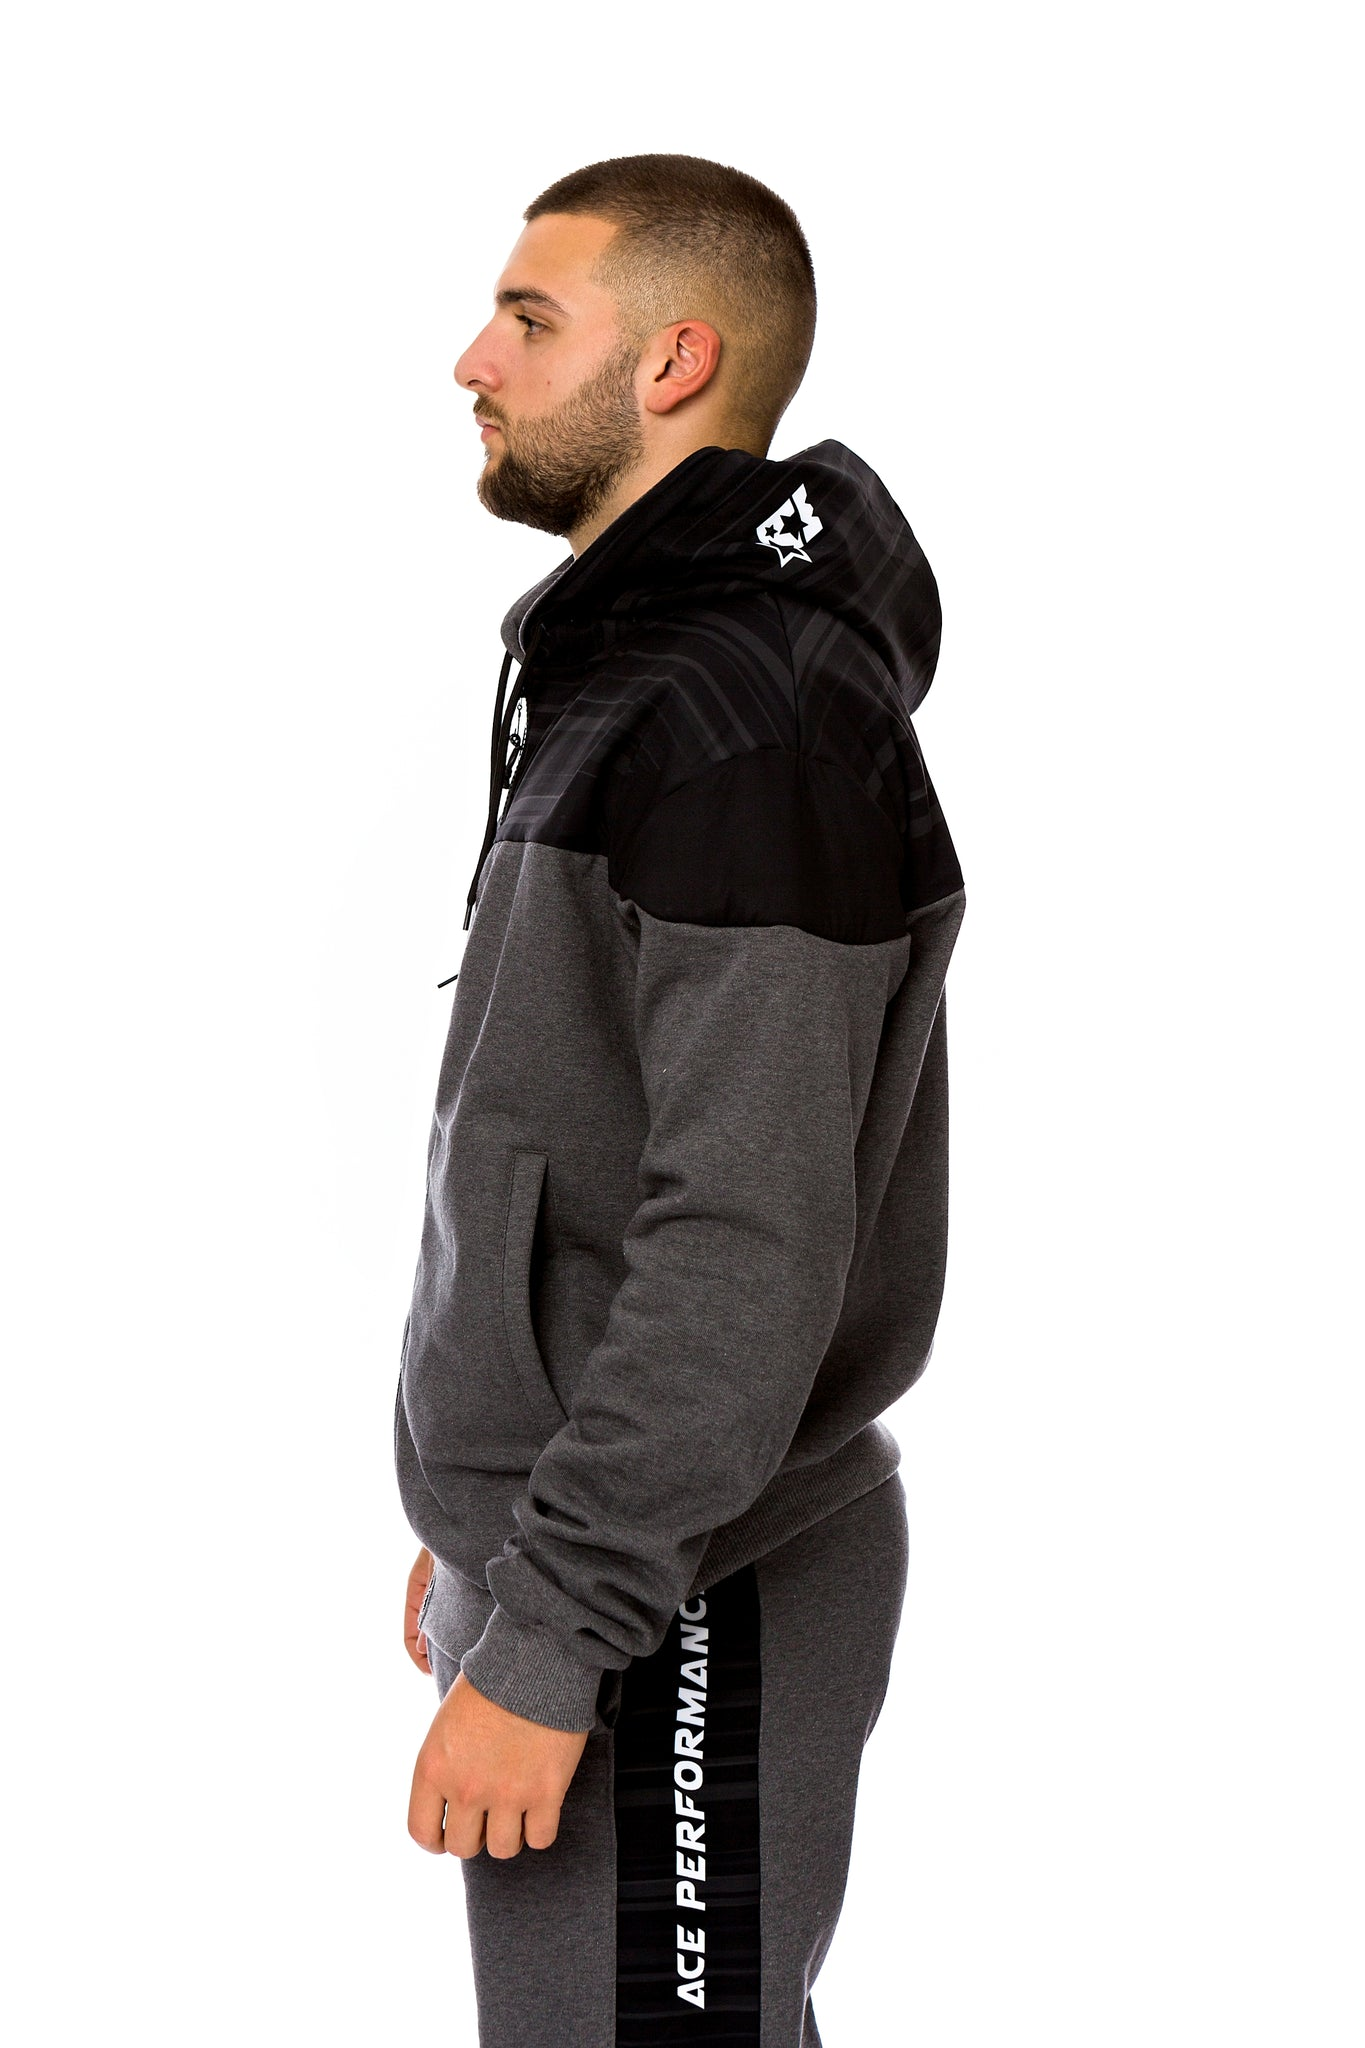 HYBRID SUIT - DARK GREY BLACK ACE - ACEPERFORMANCE